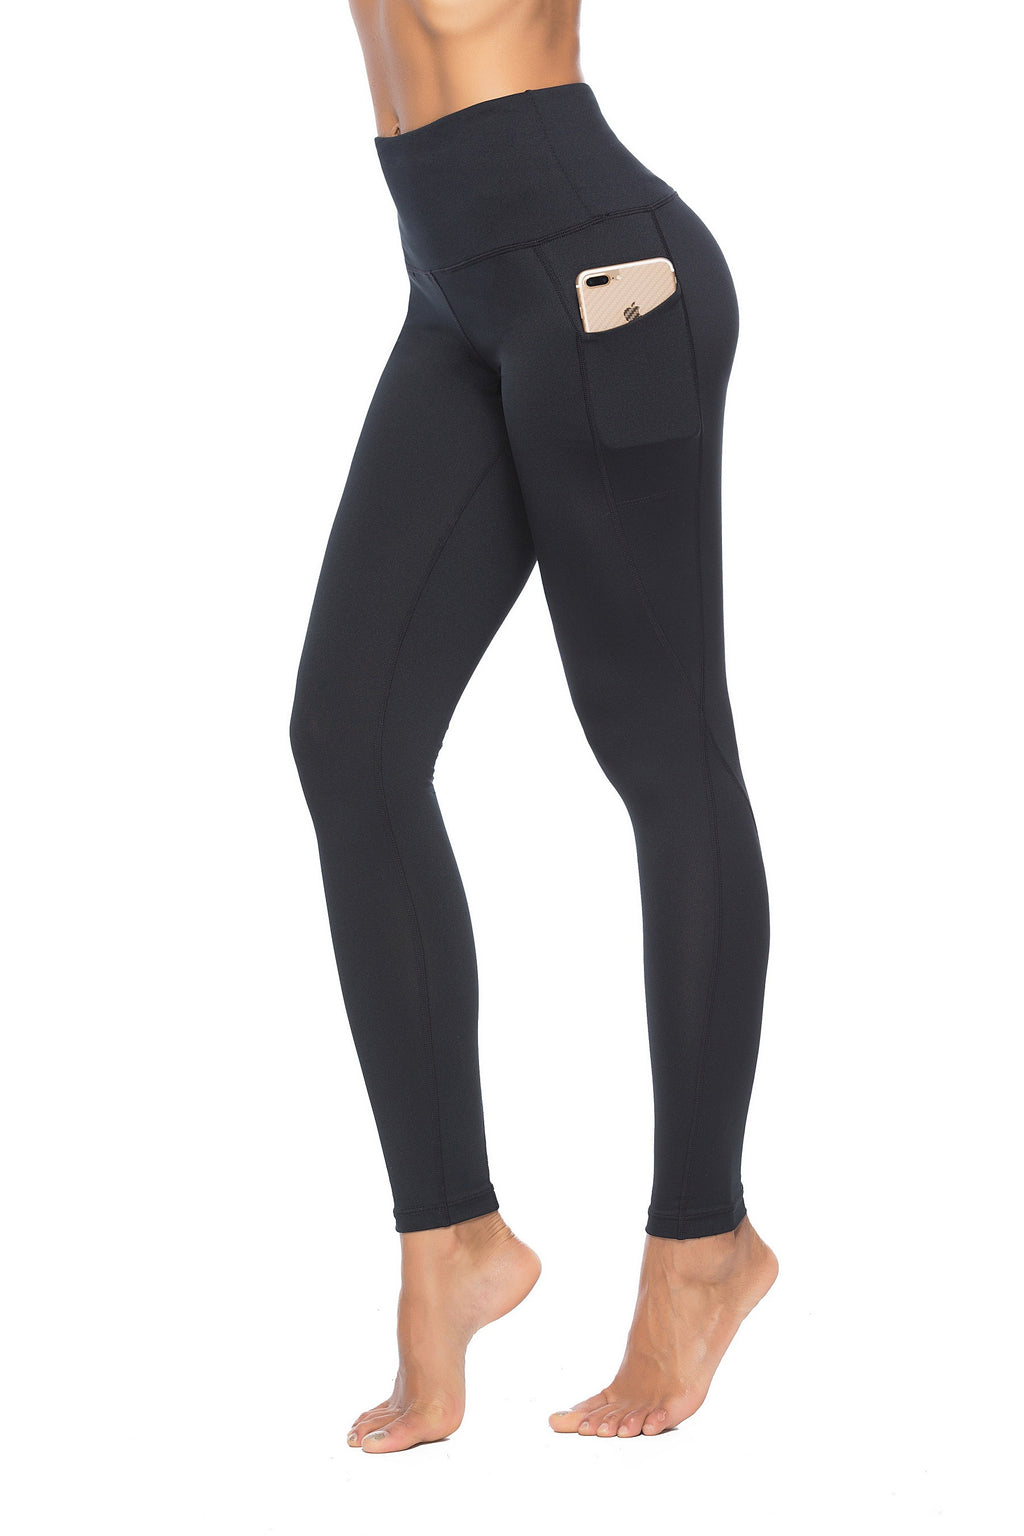 Waist High Womens Leggings